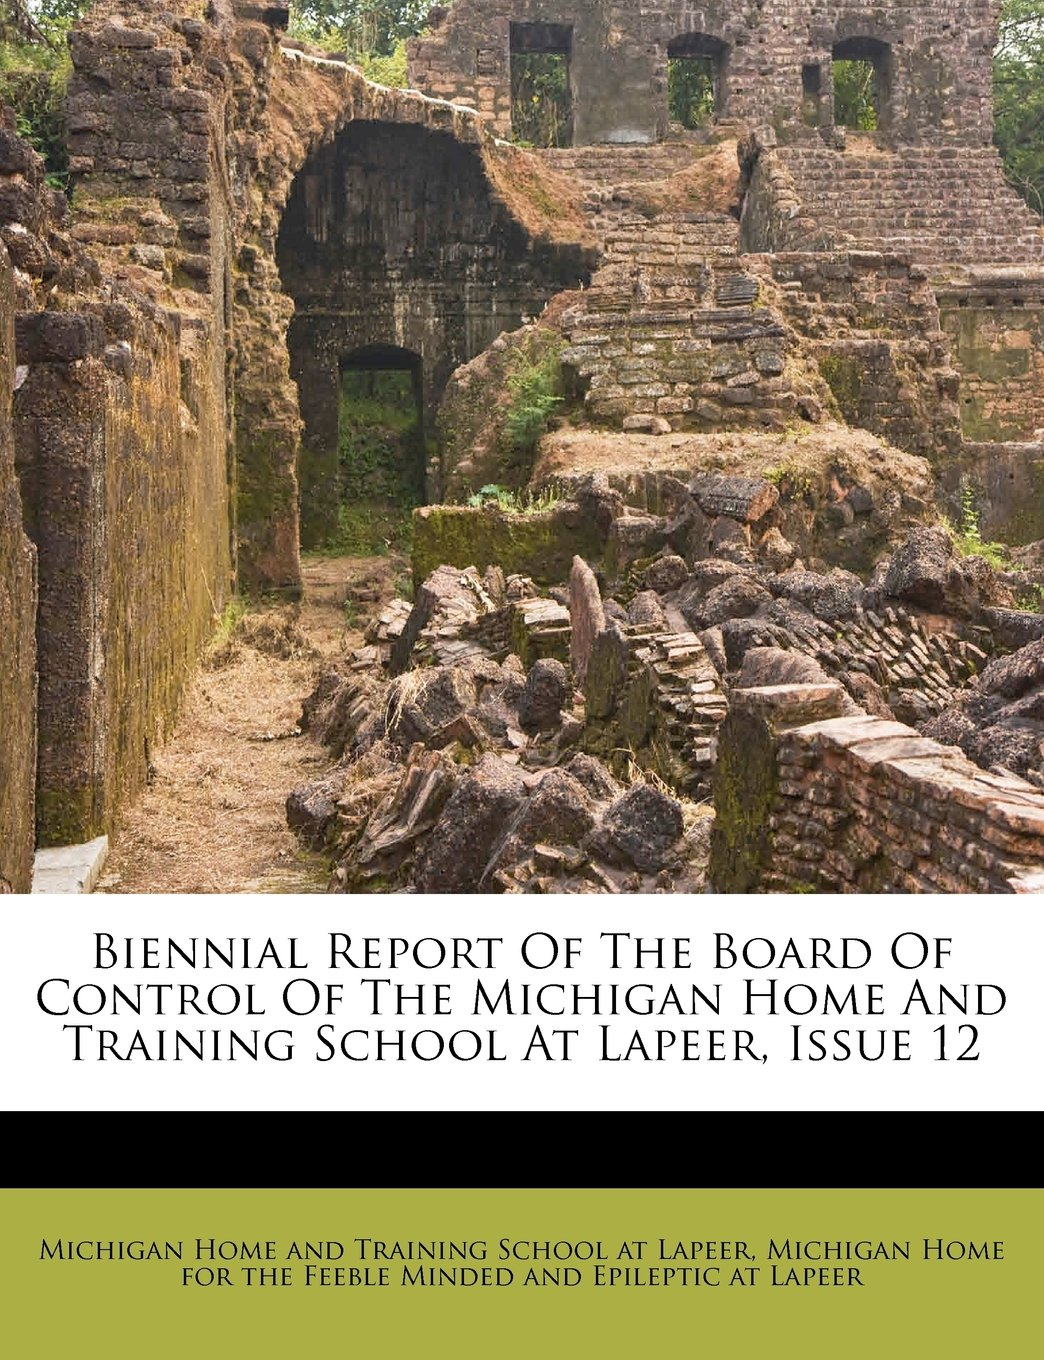 Download Biennial Report Of The Board Of Control Of The Michigan Home And Training School At Lapeer, Issue 12 ebook